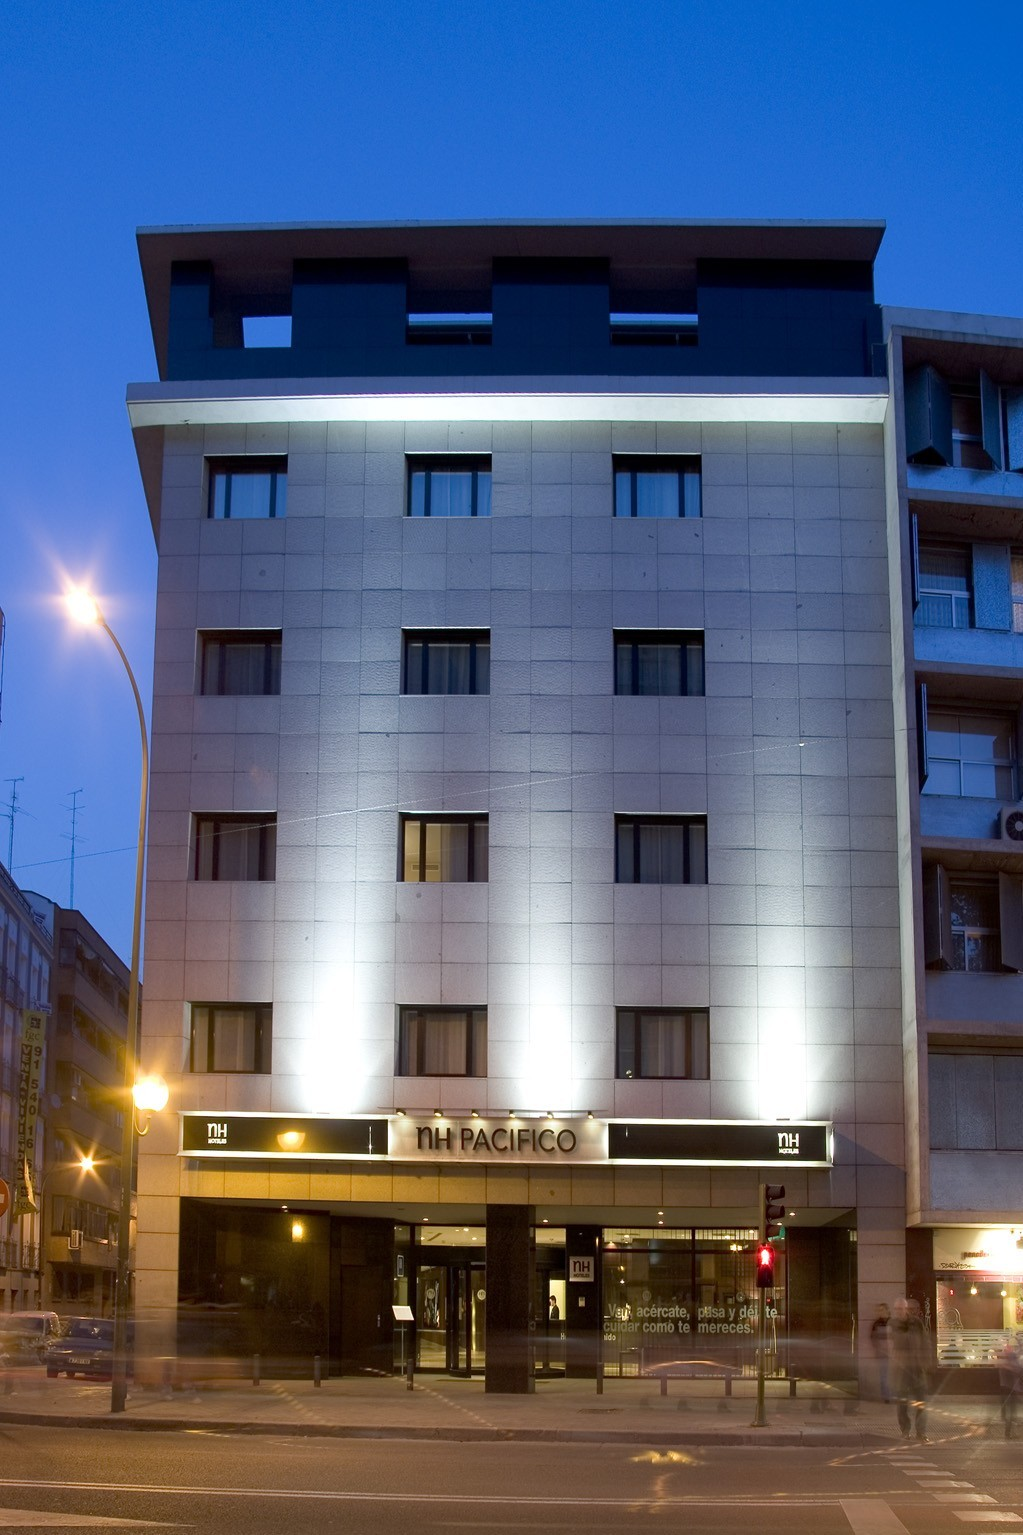 Hotel nh pac fico madrid spain for Hotels madrid